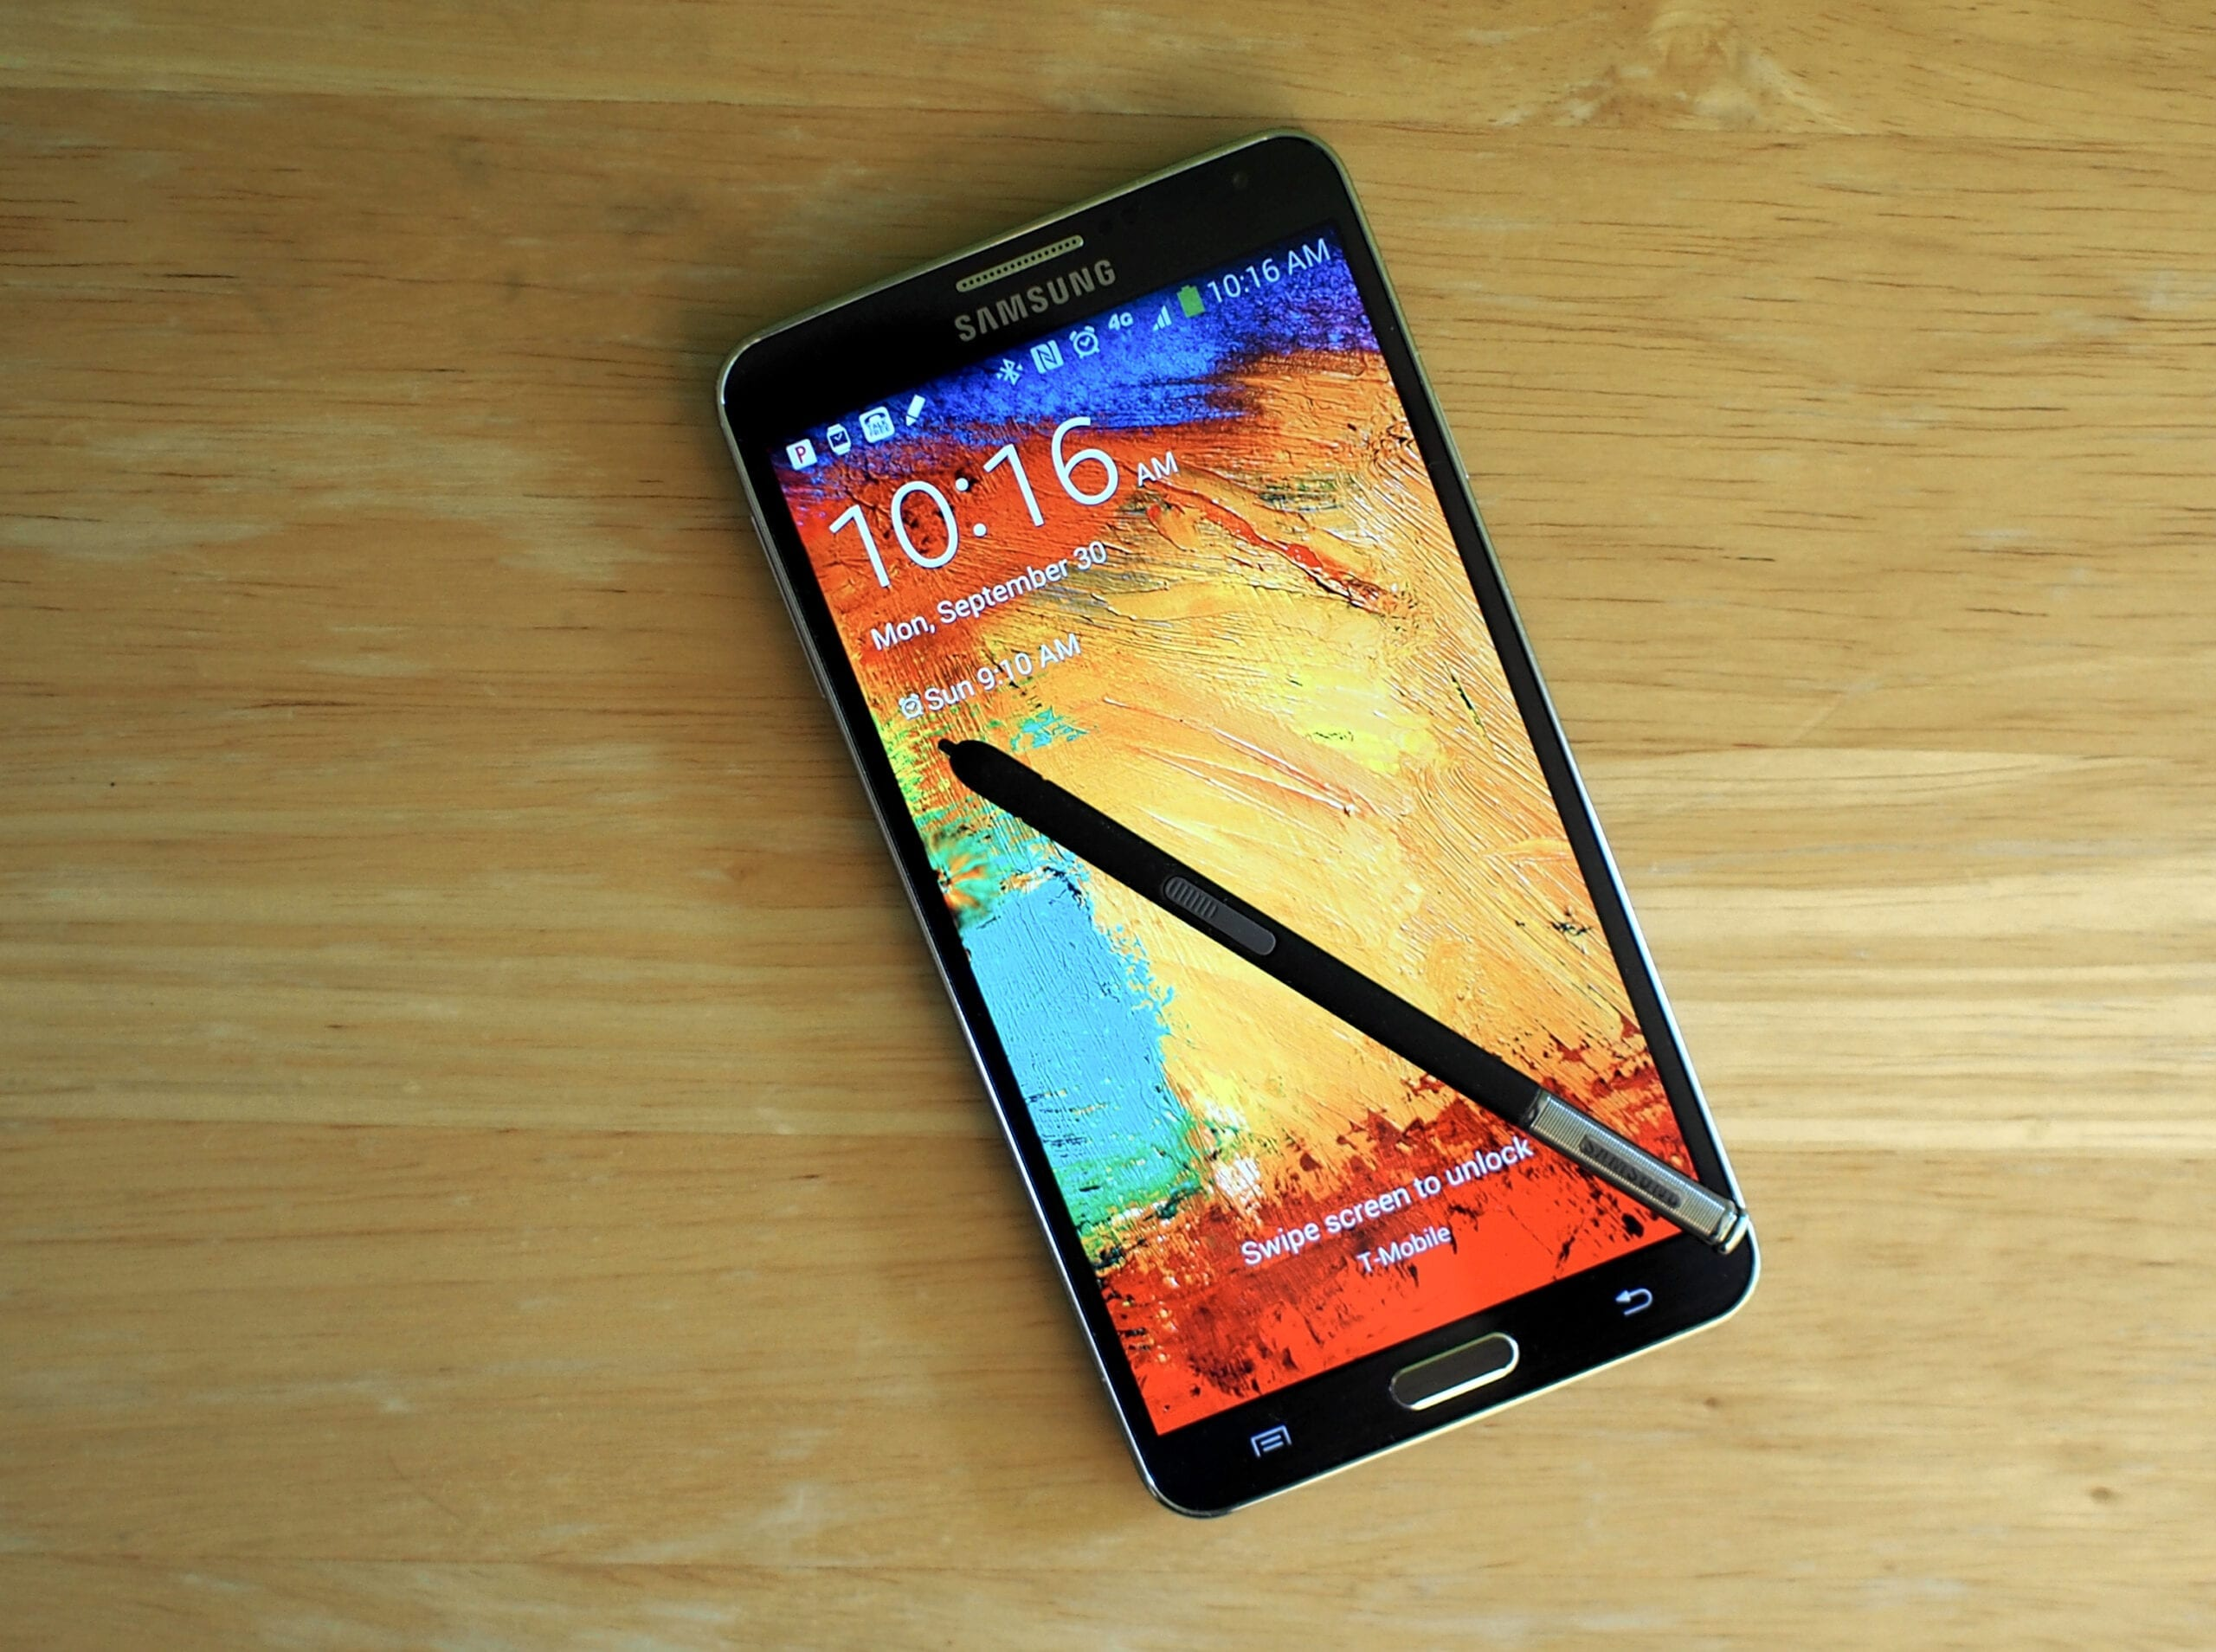 The first Samsung Galaxy Note 4 have manufacturing flaws